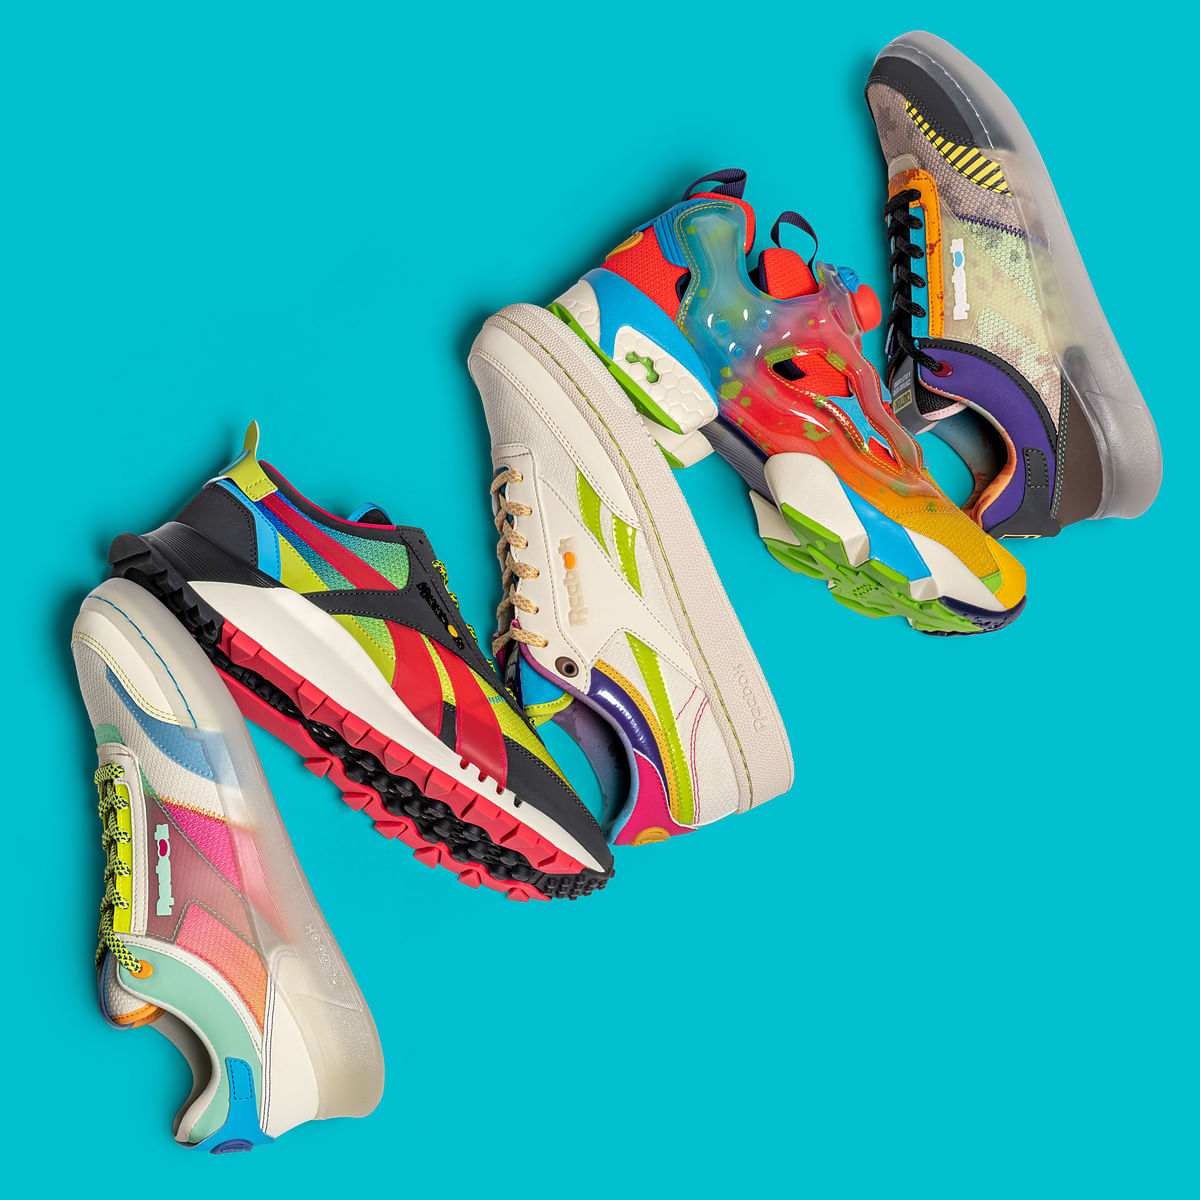 Reebok partners Jelly Belly for colourful sneaker collection